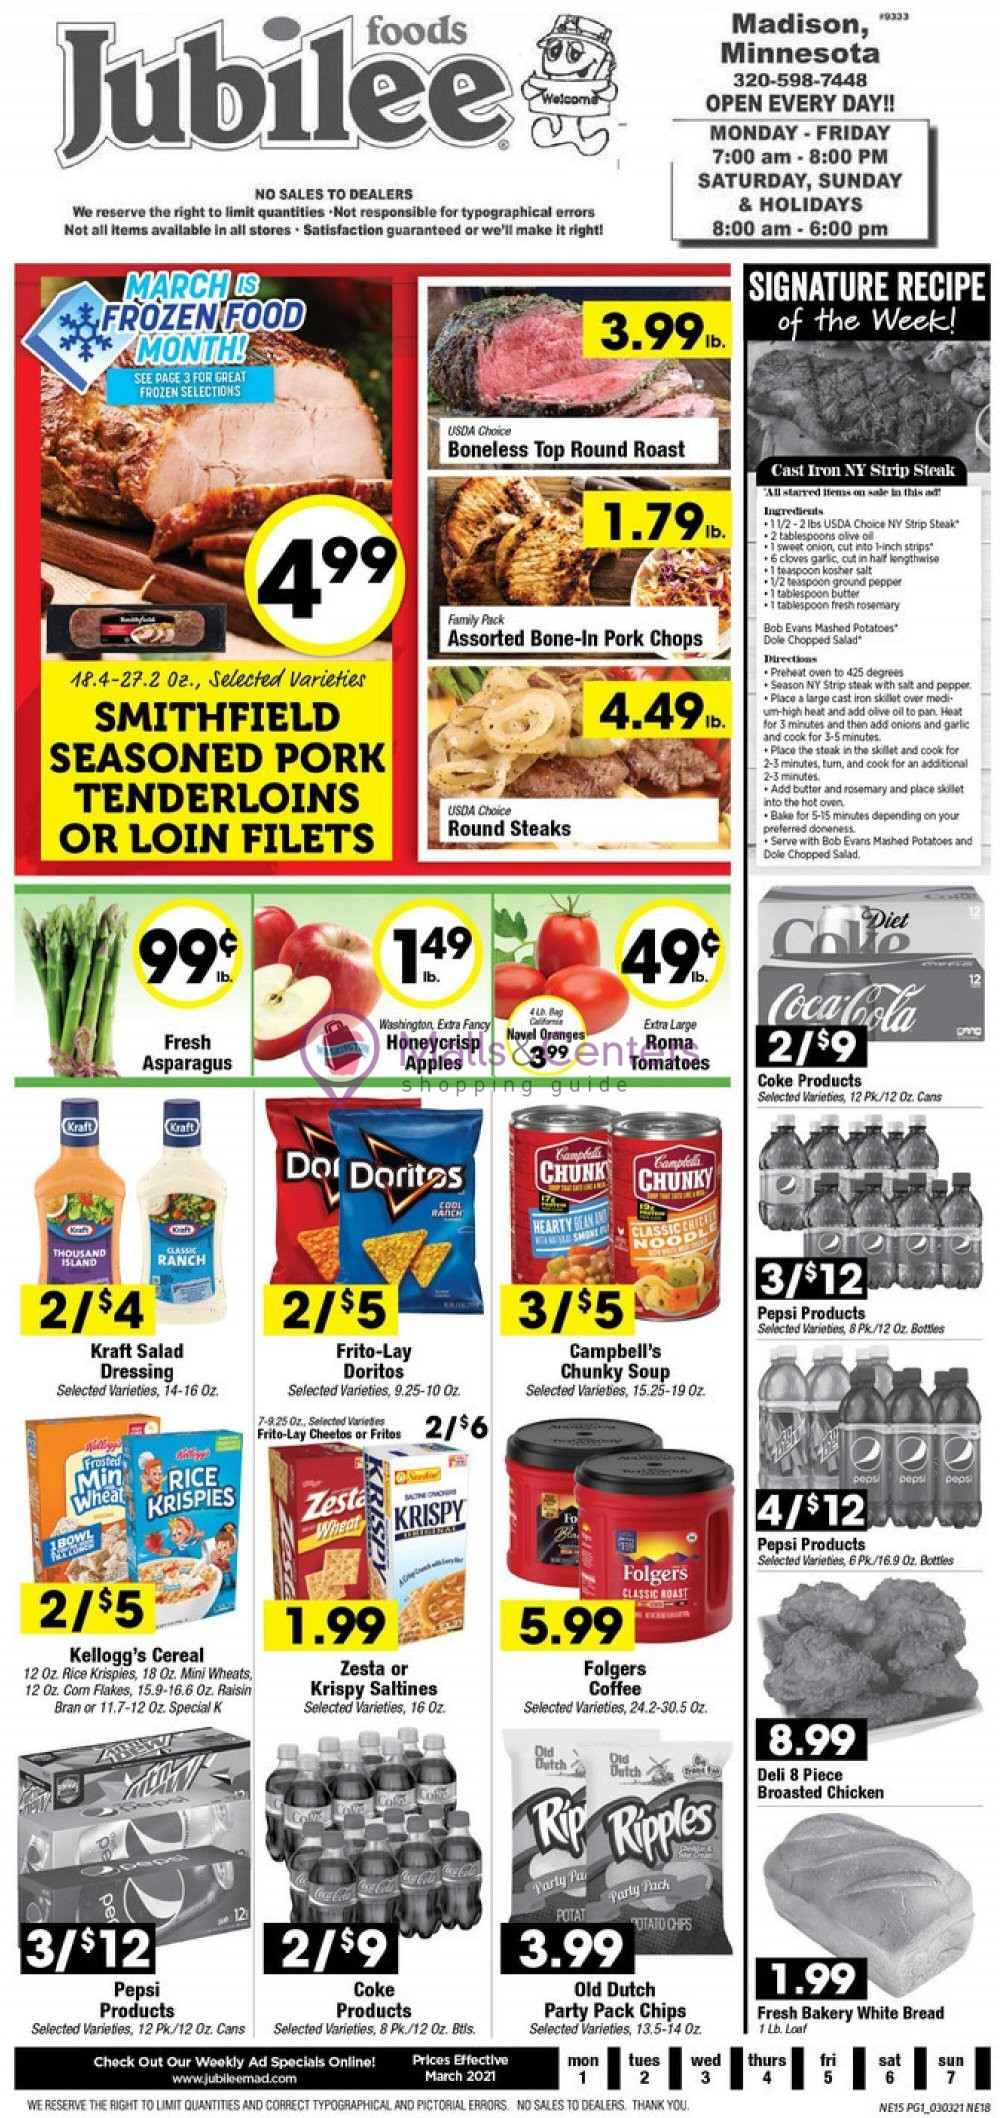 weekly ads Jubilee Foods - page 1 - mallscenters.com